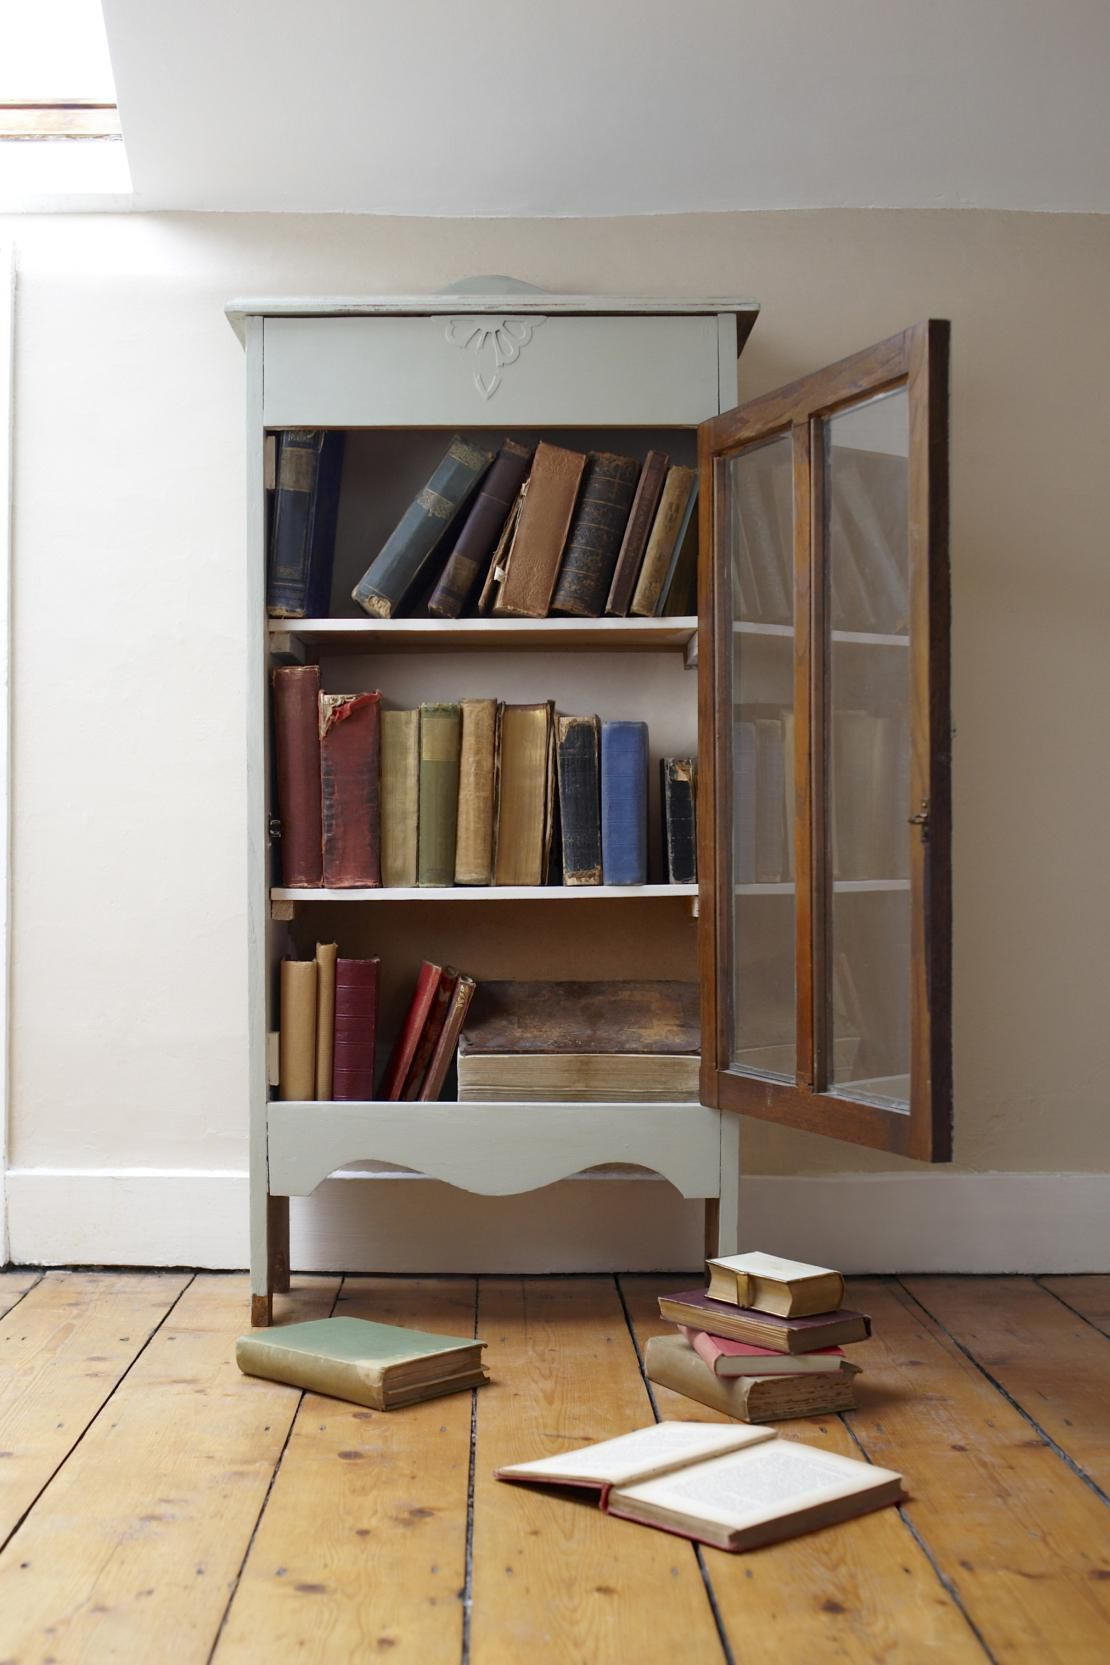 How to Refurbish an Old Bookcase